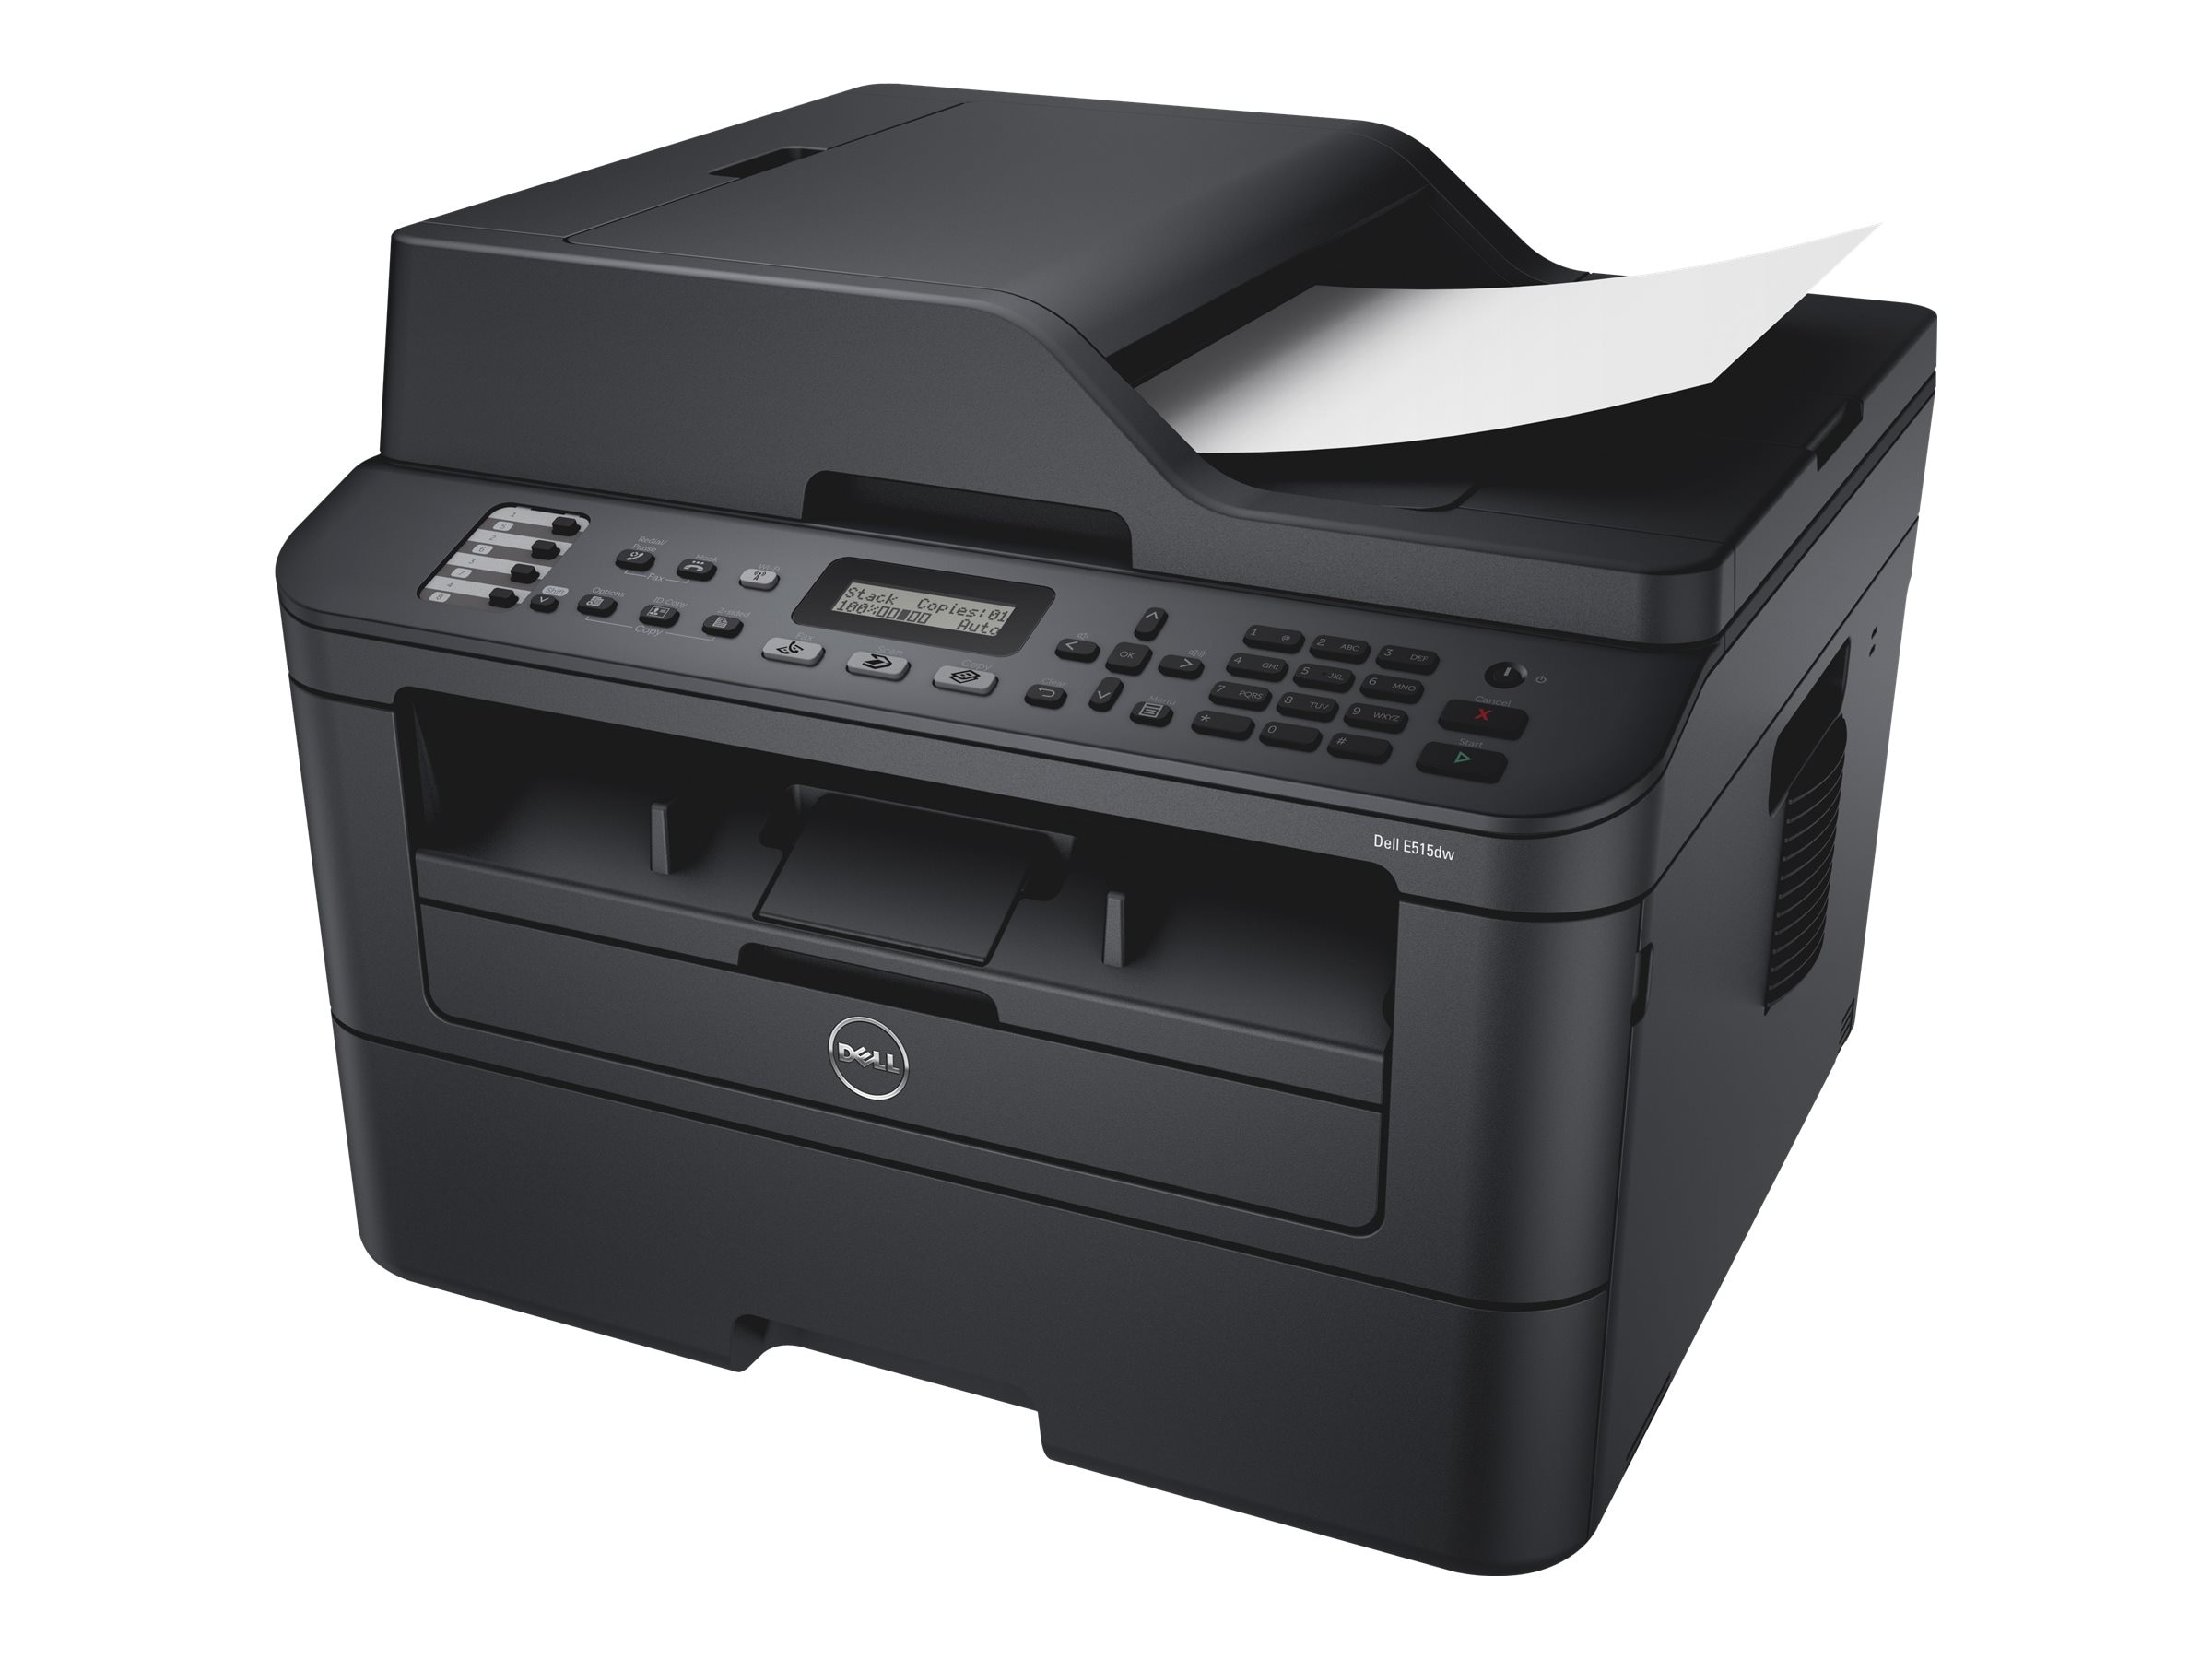 Dell E515dn Multifunction Printer (210-AEDT), JHTPC, 23207899, MultiFunction - Laser (monochrome)